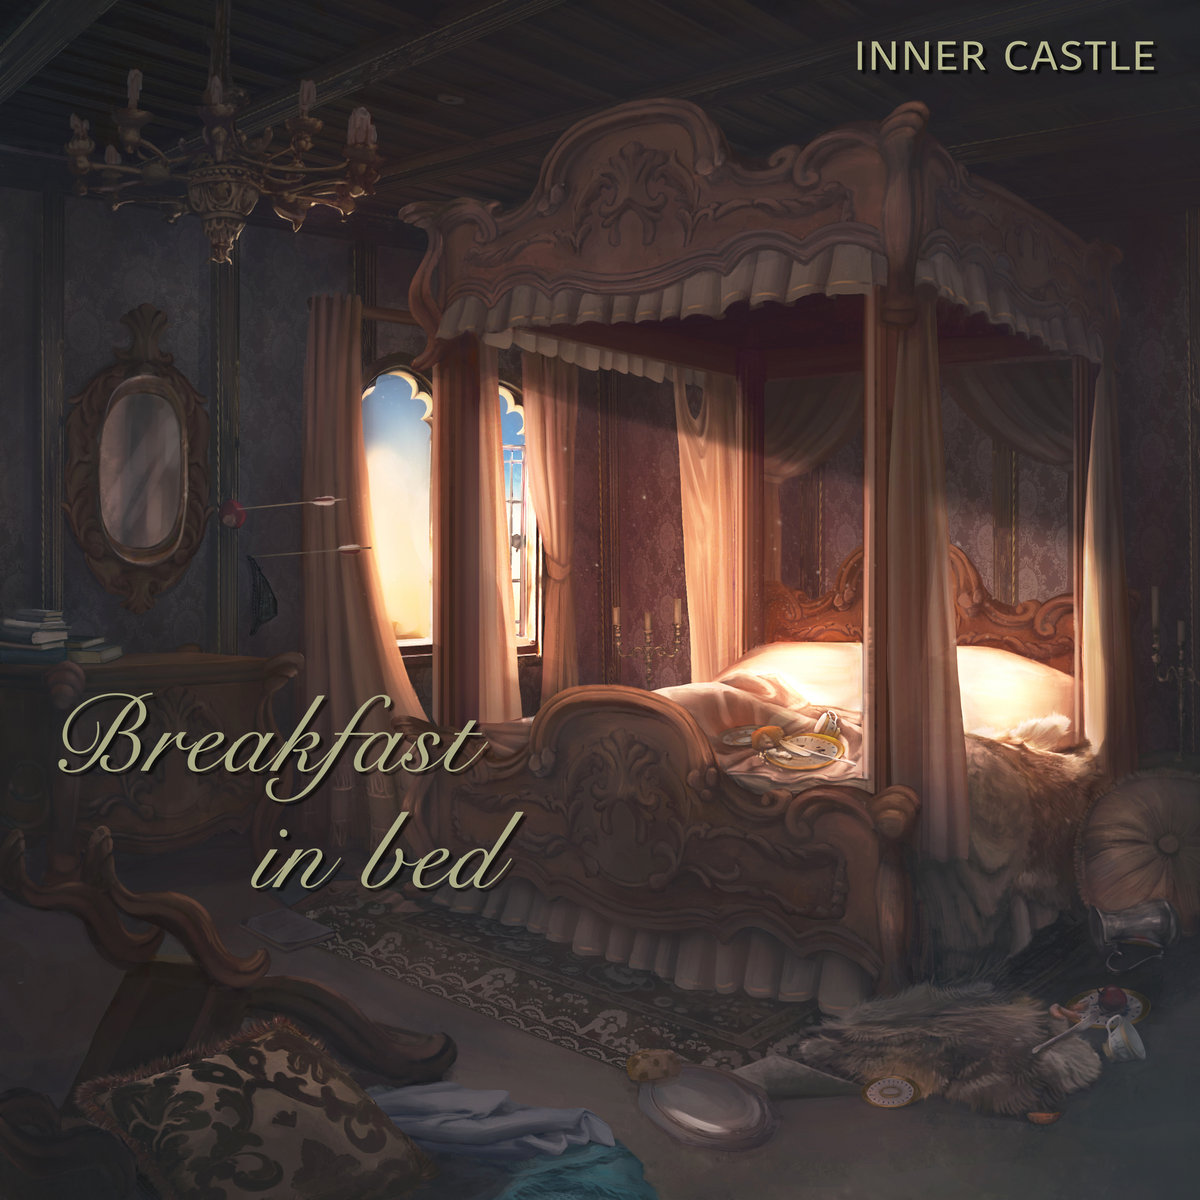 Breakfast in Bed (single) by Inner Castle